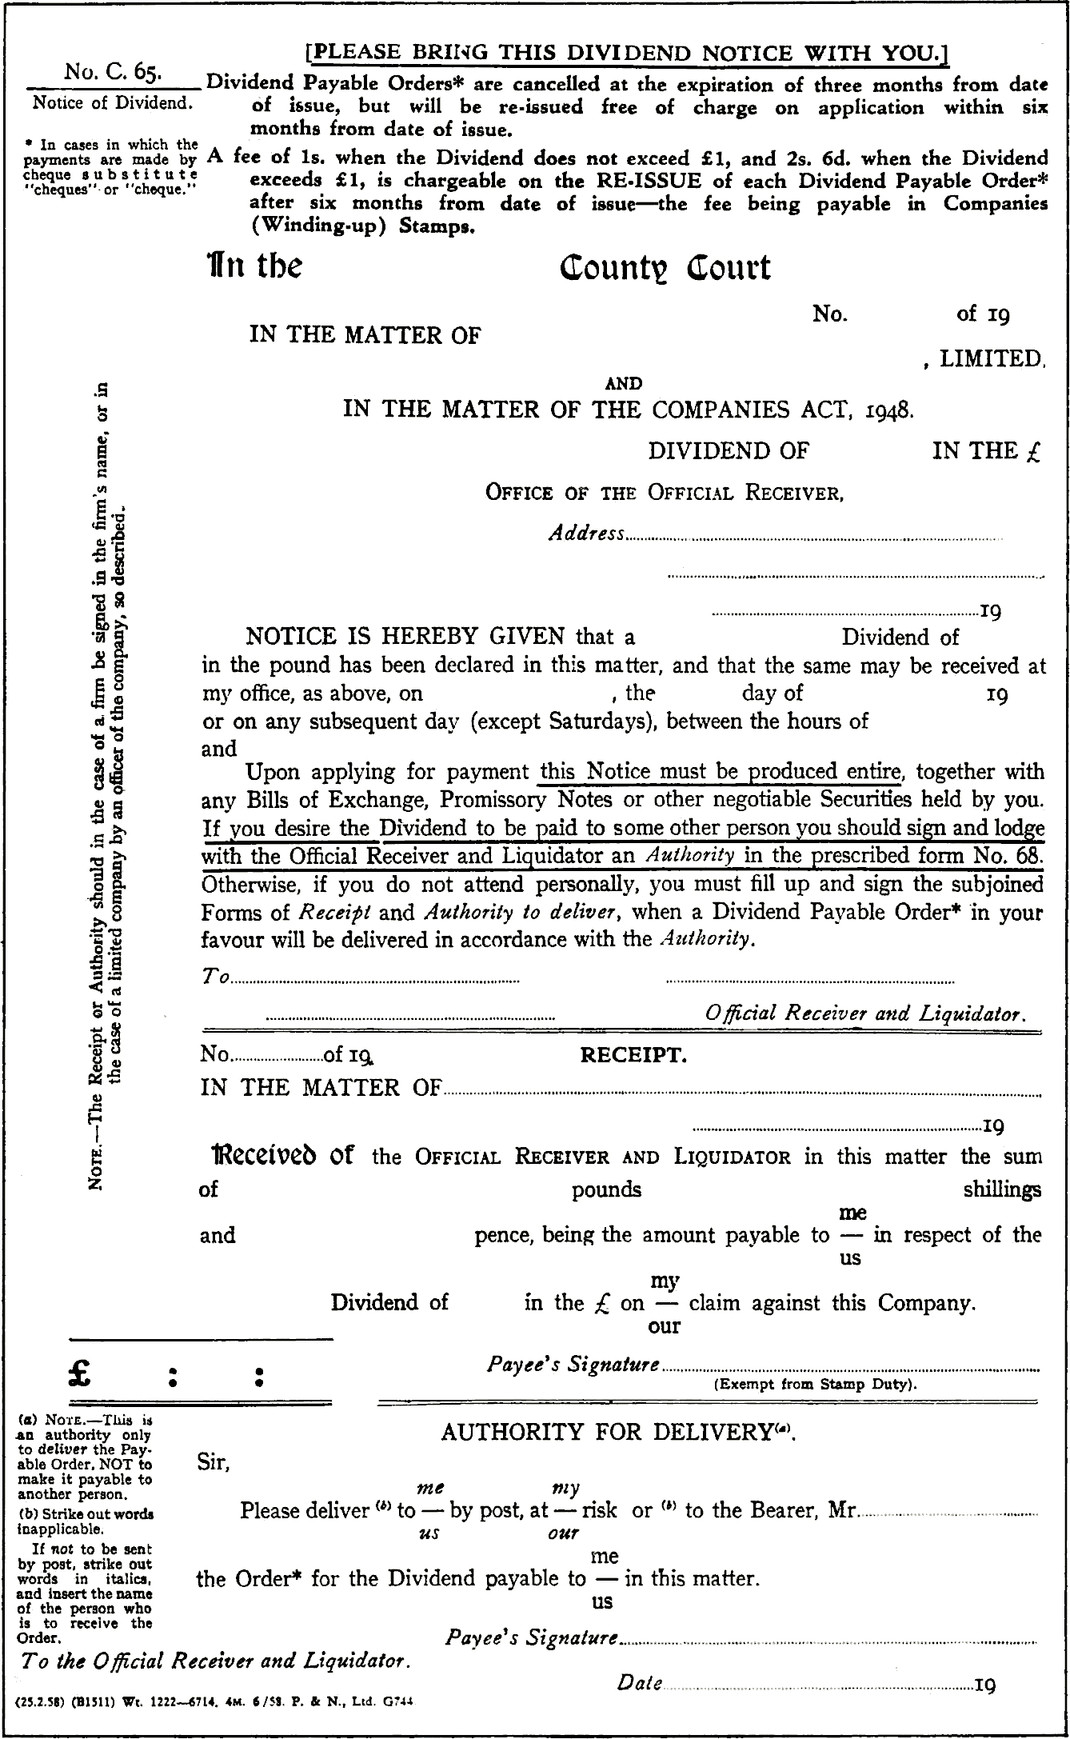 """Dividend form. Along the side of the page a note reads: The Receipt or Authority should in the case of a firm be signed in the firm's name, or in the case of a limited company by an officer of the company, so described. PLEASE BRING THIS DIVIDEND NOTICE WITH YOU. Side note reads: No. C. 65. Notice of Dividend. In cases in which the payments are made by cheque substitute """"cheques' or 'cheque.'. Dividend Payable Orders* are cancelled at the expiration of three months from date of issue, but will be re-issued free of charge on application within six months from date of issue. A fee of 1s. when the Dividend does not exceed £1, and 2s. 6d. when the Dividend exceeds £1, is chargeable on the RE-ISSUE of each Dividend Payable Order* after six months from date of issue—the fee being payable in Companies (Winding-up) Stamps. Main title for form: In the County Court, No. of 19. Field reads: """"In the matter of, blank field, limited"""". And in the matter of the companies act, 1948. dividend of, blank field, in the £. office of the official receiver, Field that reads """"Address"""". Notice is hereby given that a, blank field, Dividend of, blank field, in the pound has been declared in this matter, and that the same may be received at my office, as above, on blank field, the blank field day of 19 or on any subsequent day (except Saturdays), between the hours of blank field and blank field. Upon applying for payment this Notice must be produced entire, together with any Bills of Exchange, Promissory Notes or other negotiable Securities held by you. If_you desire the Dividend to be paid to some other person you should sign and lodge with the Official Receiver and Liquidator an Authority in the prescribed form No. 68. Otherwise, if you do not attend personally, you must fill up and sign the subjoined Forms of Receipt and Authority to deliver, when a Dividend Payable Order* in your favour will be delivered in accordance with the Authority,. Field that reads """"To"""". Signed by, Official Receiver """